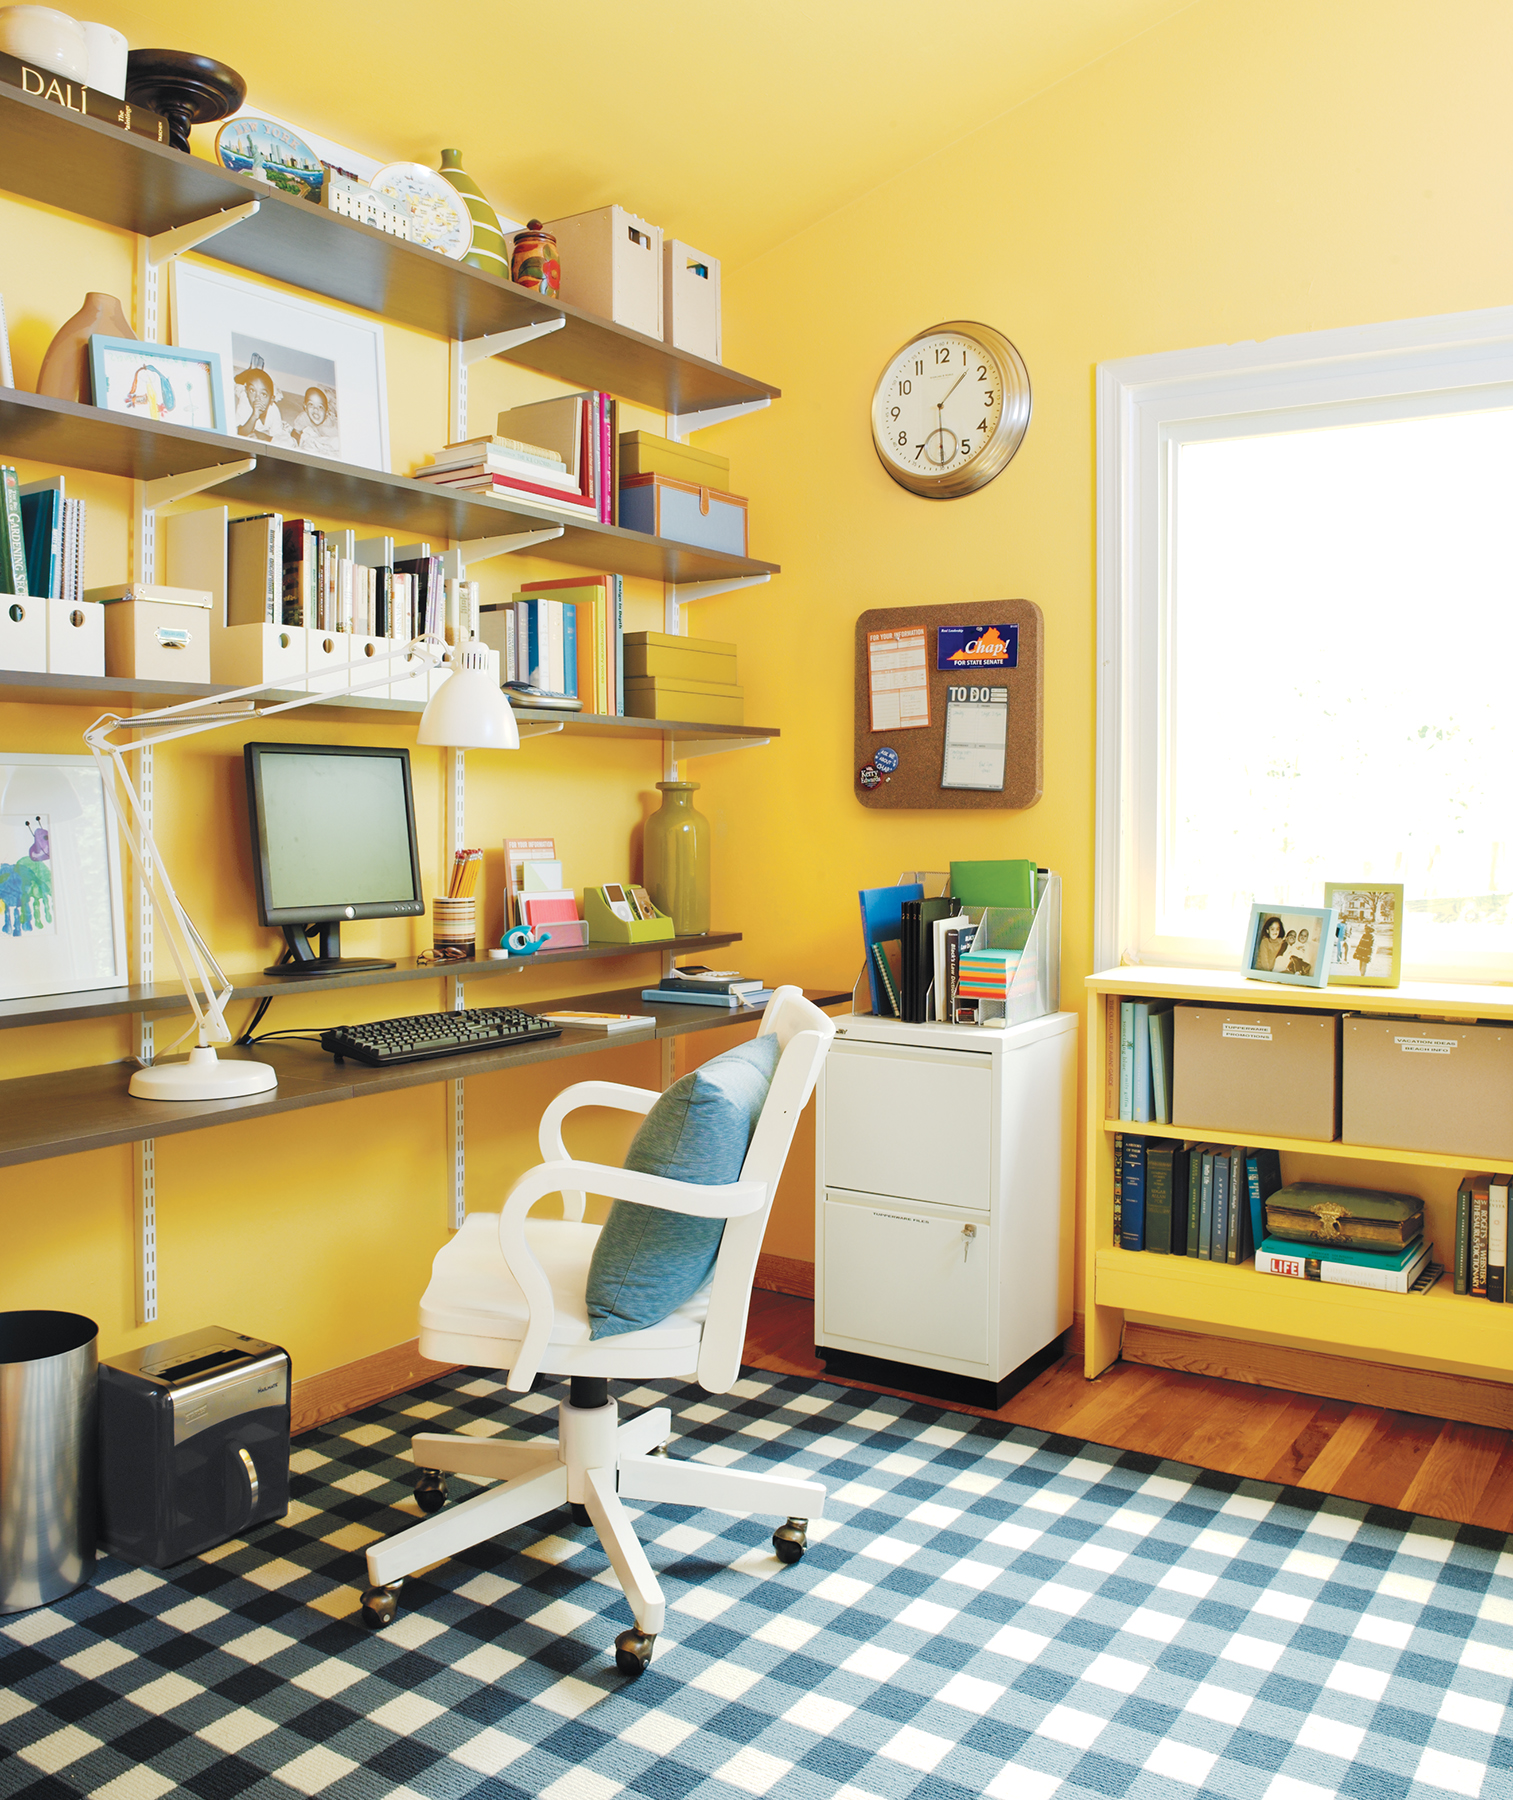 21 Ideas for Organizing Your Home Office